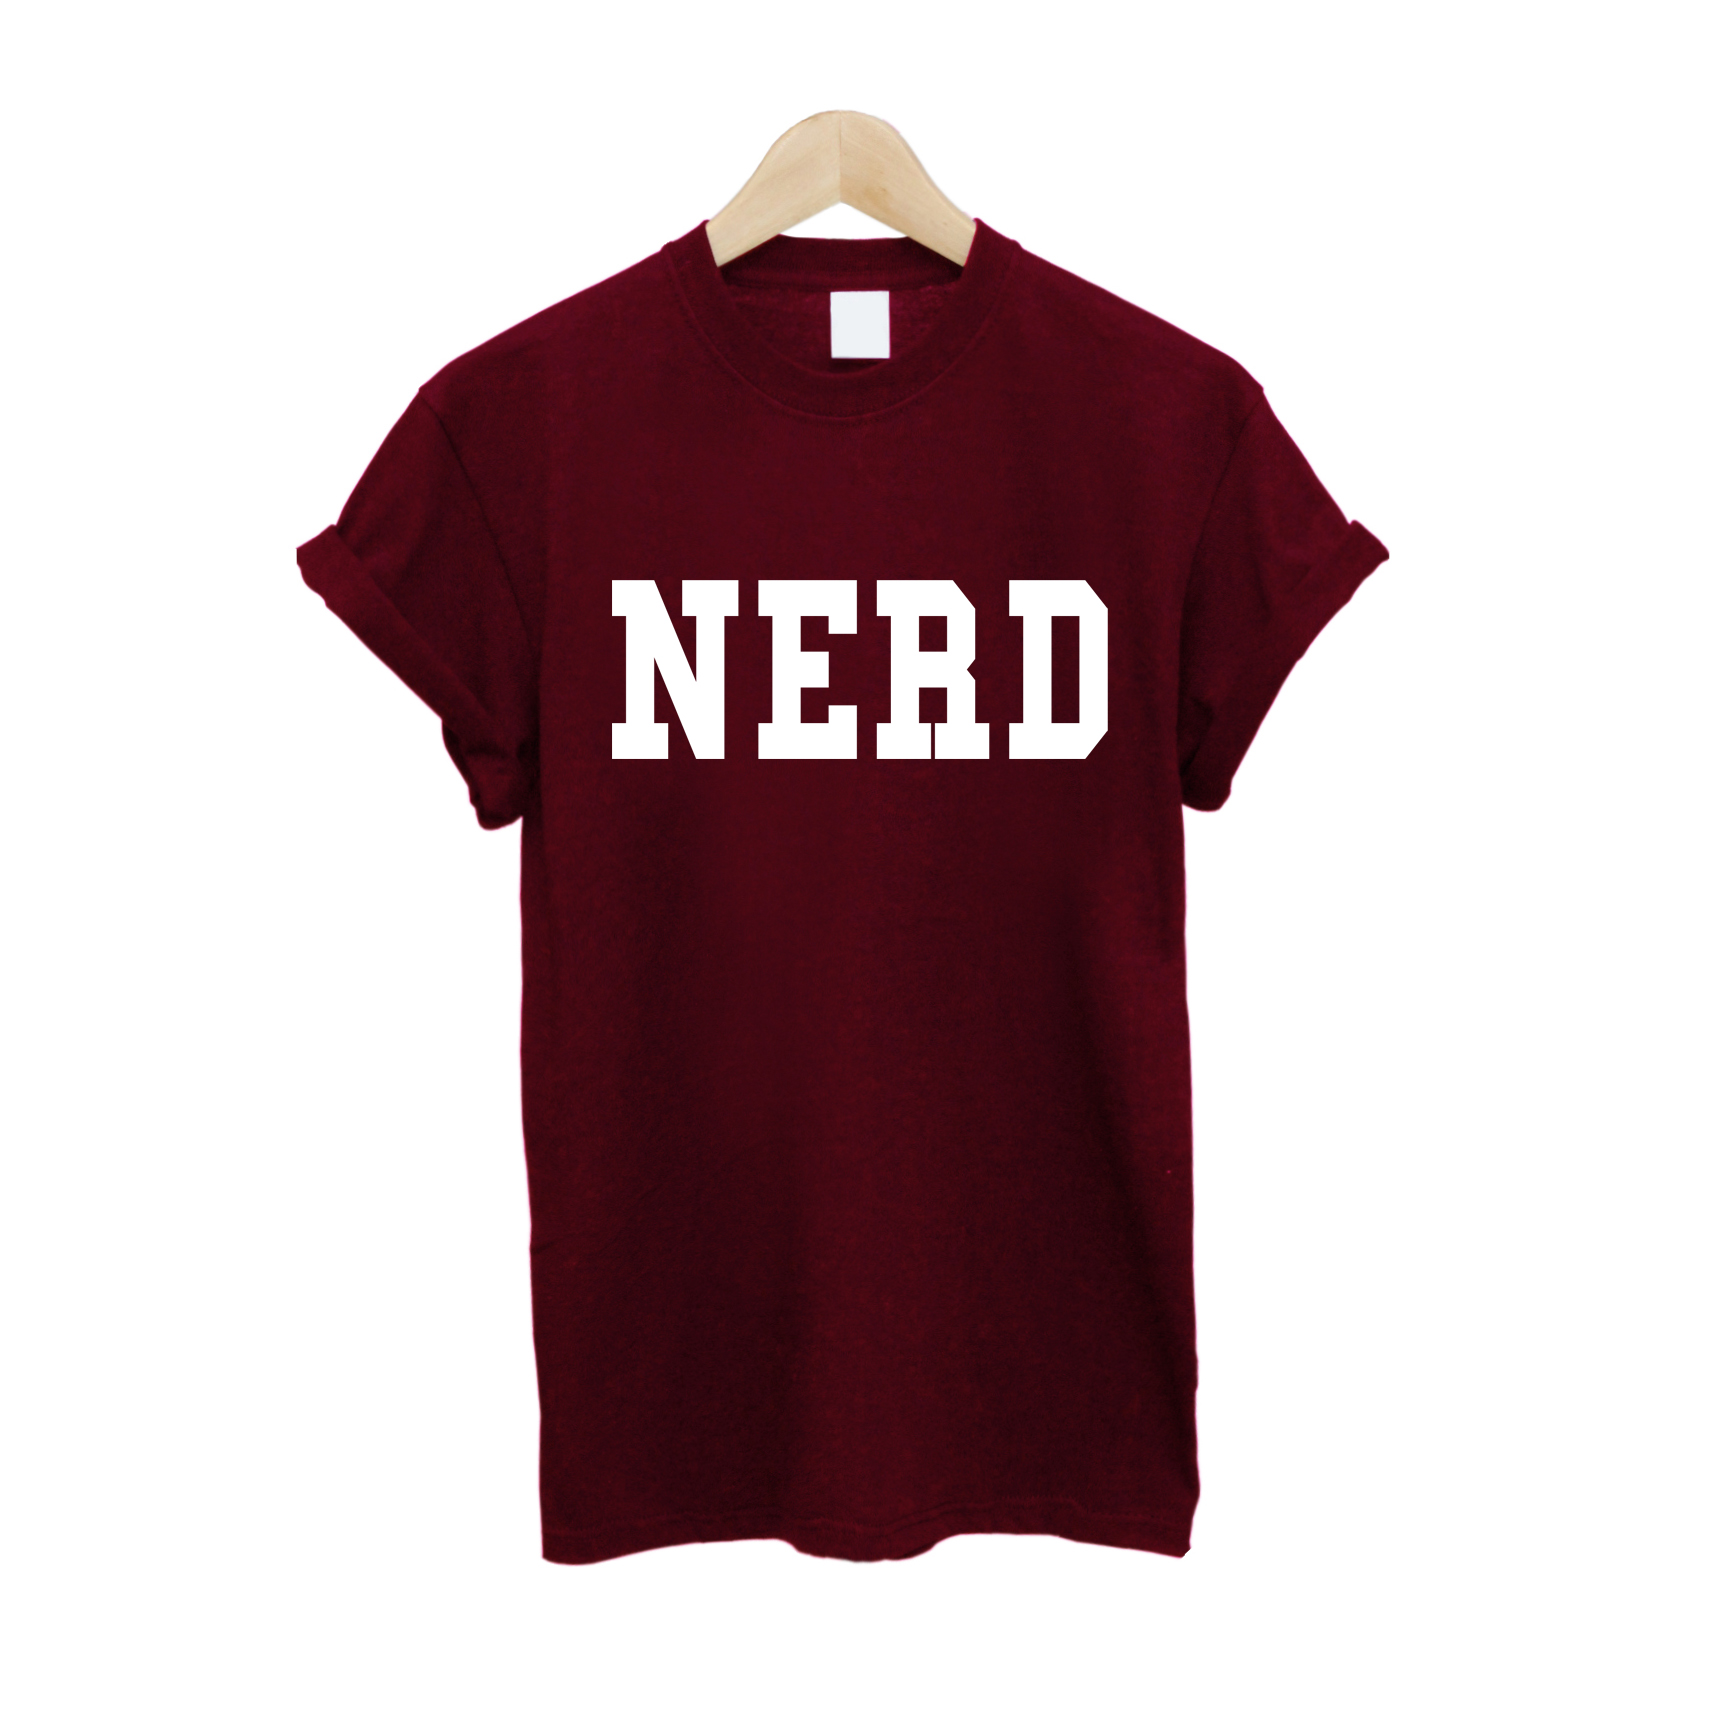 Nerd T Shirt £10   Free UK Delivery - #TeeIsland